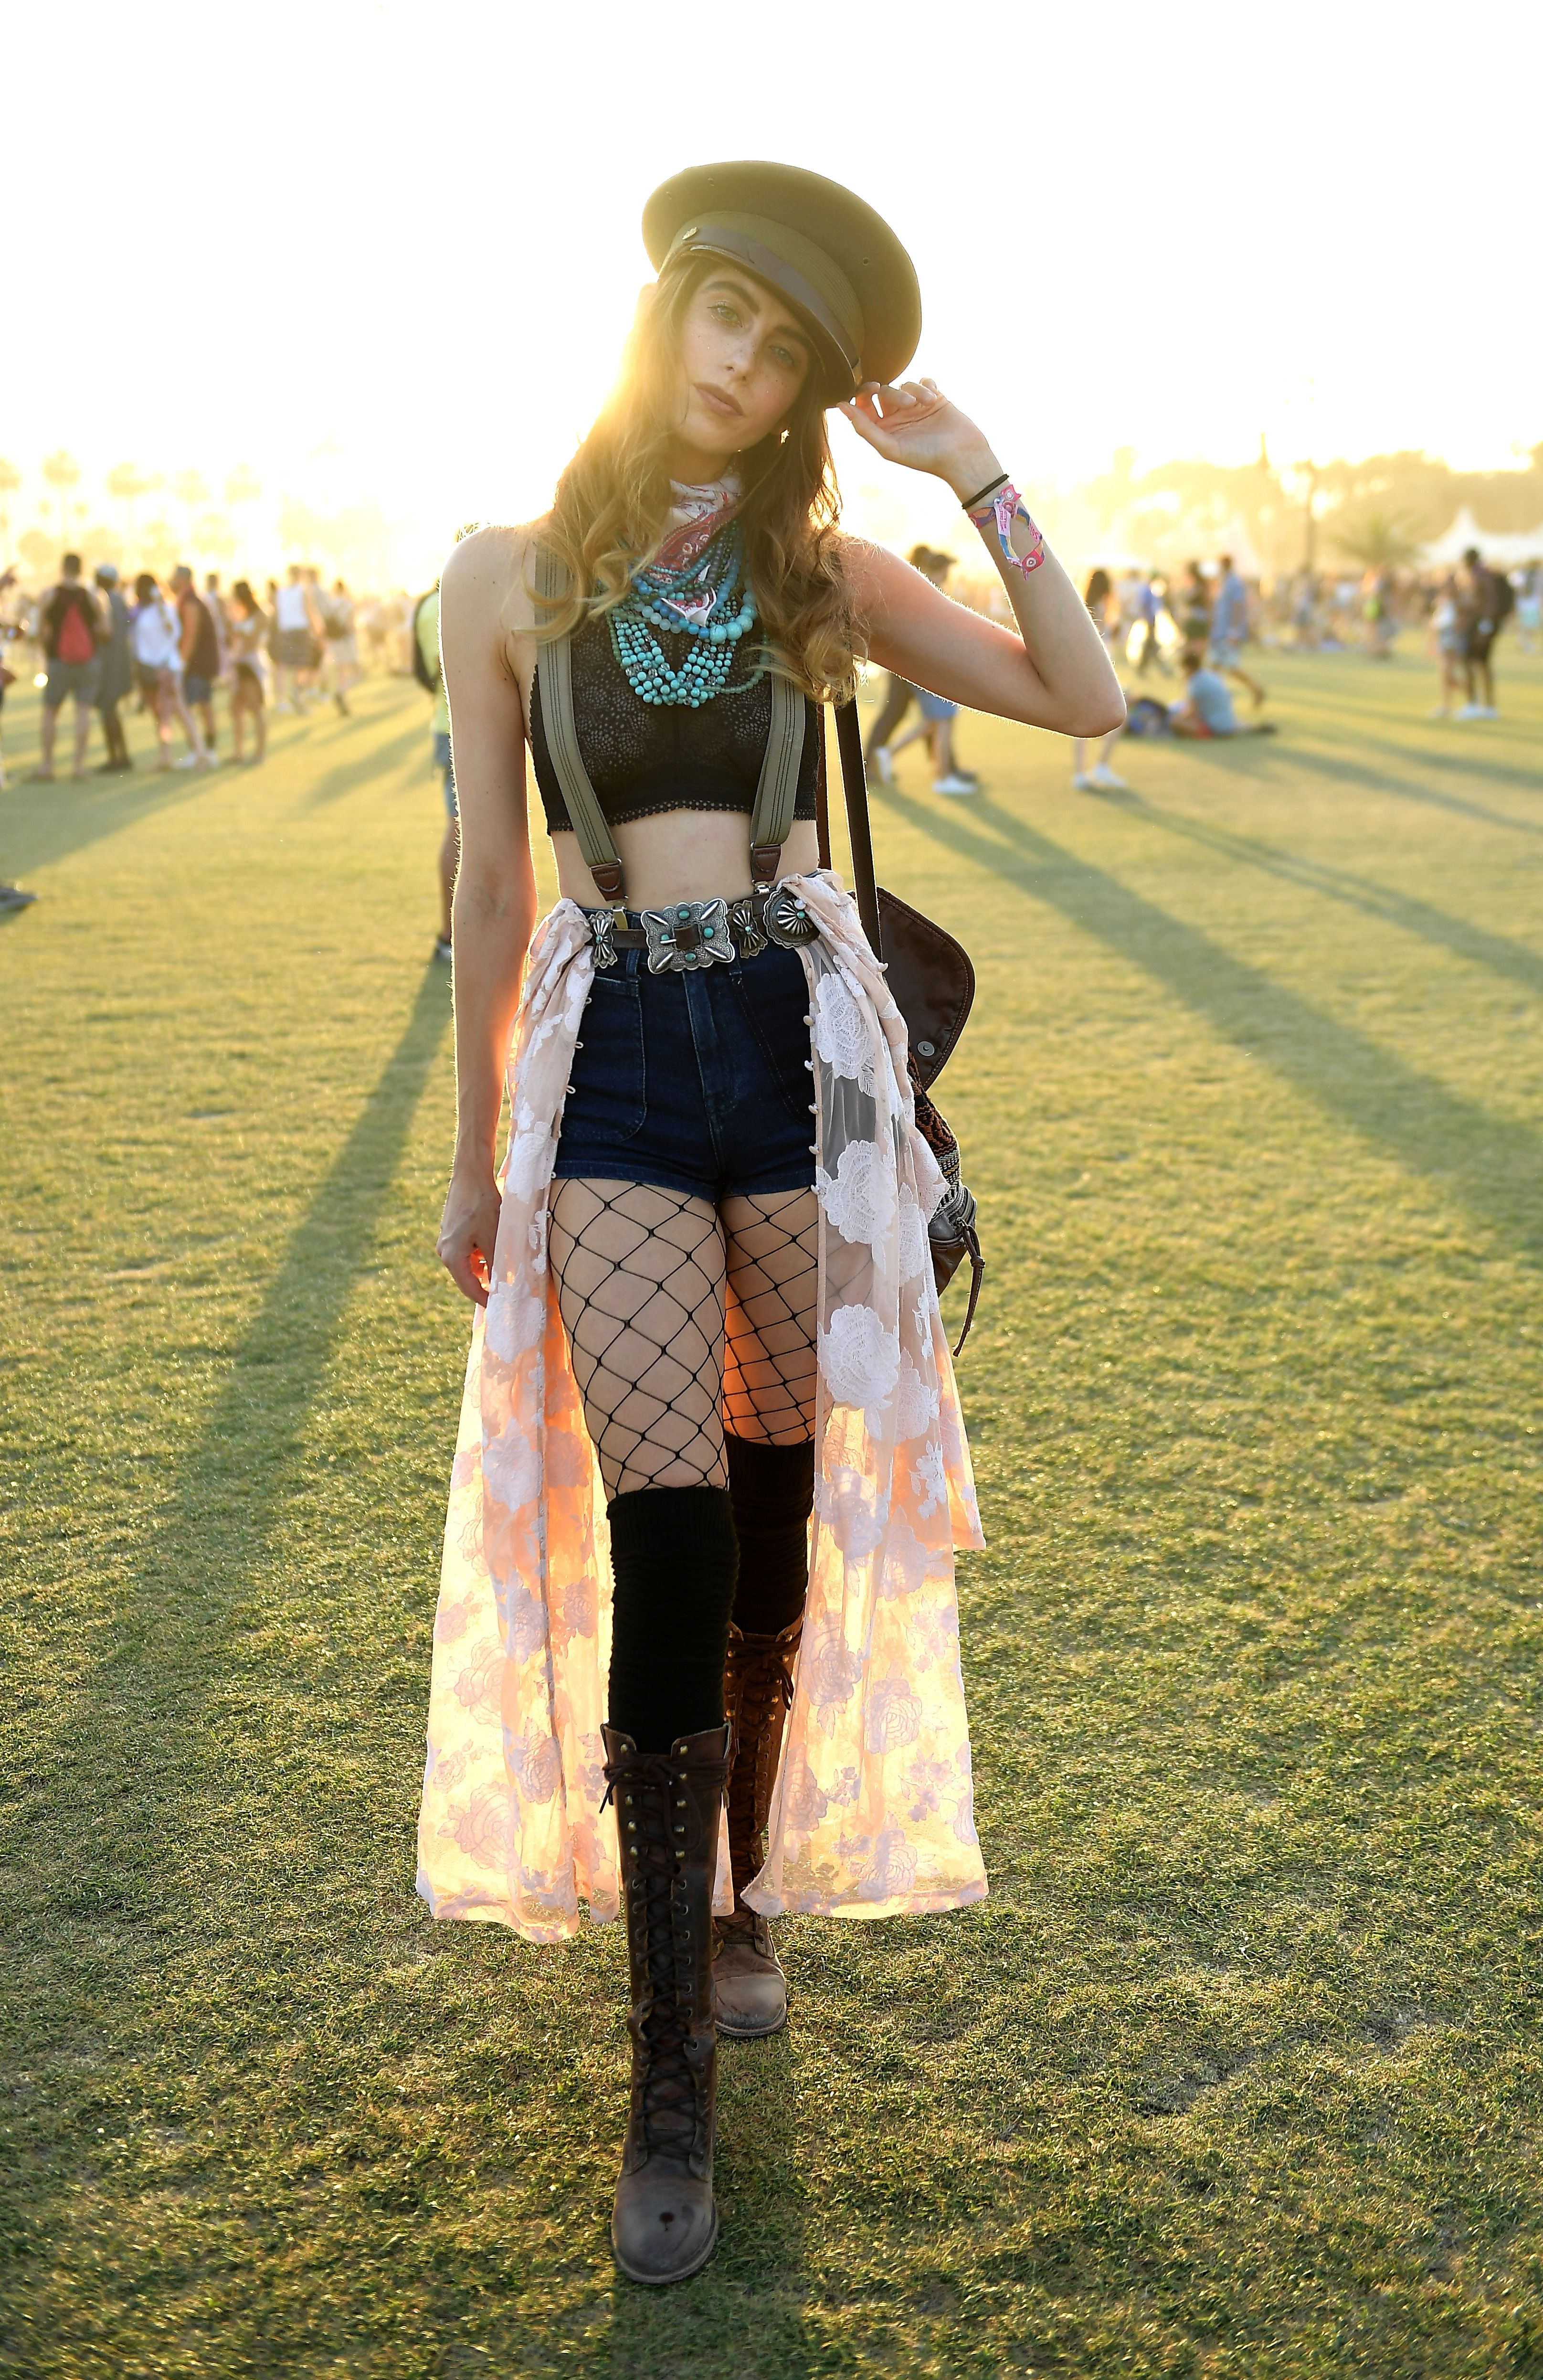 33 Festival Fashion Picks for a Seriously InstagrammableOutfit 33 Festival Fashion Picks for a Seriously InstagrammableOutfit new foto